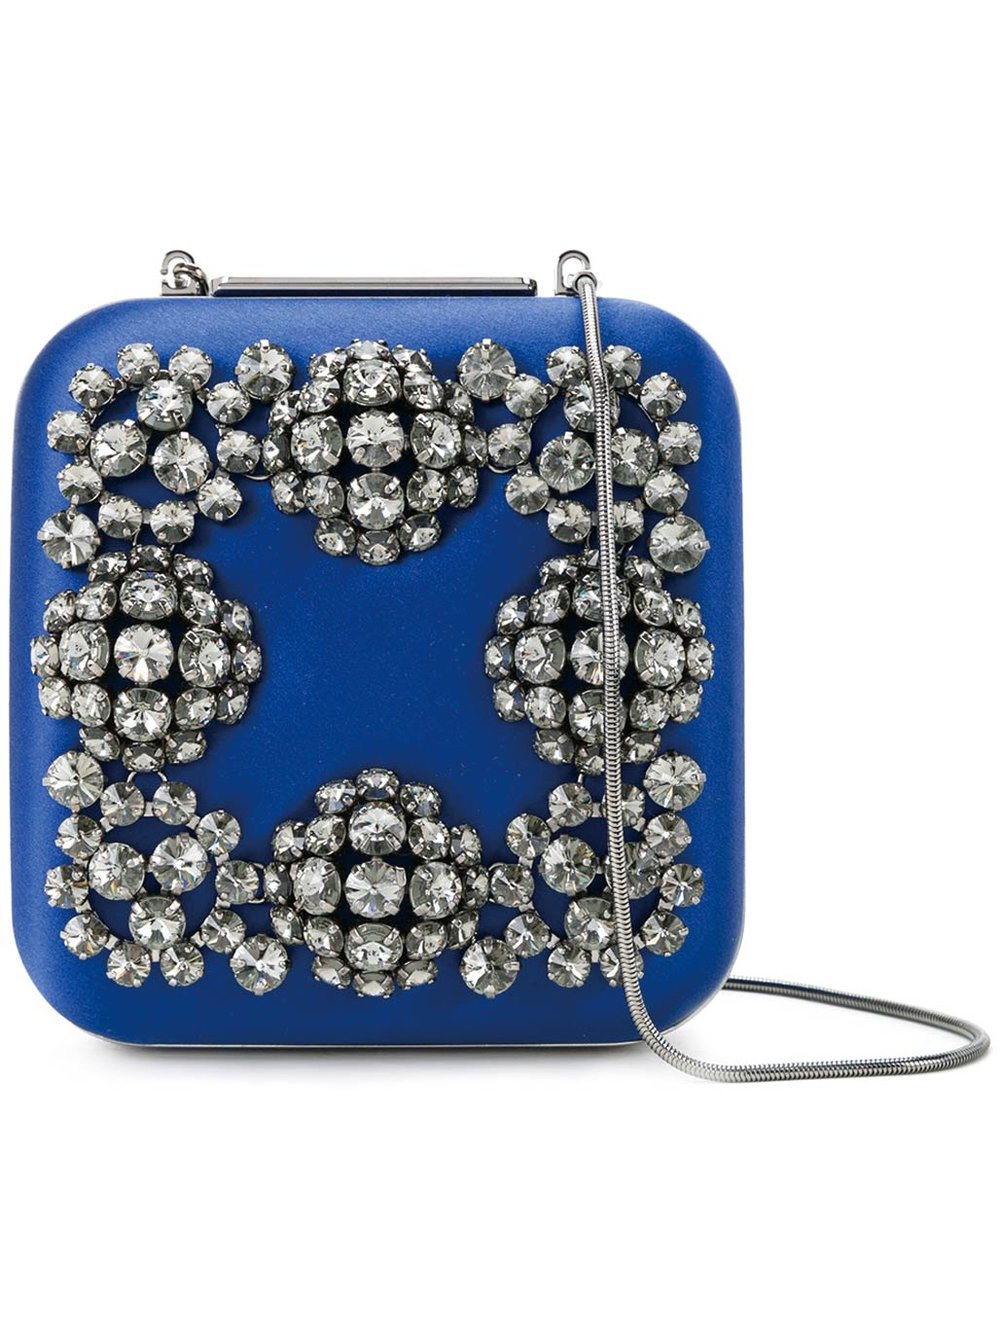 Hangi Blue Satin Square Jewelled Clutch by Manolo Blahnik